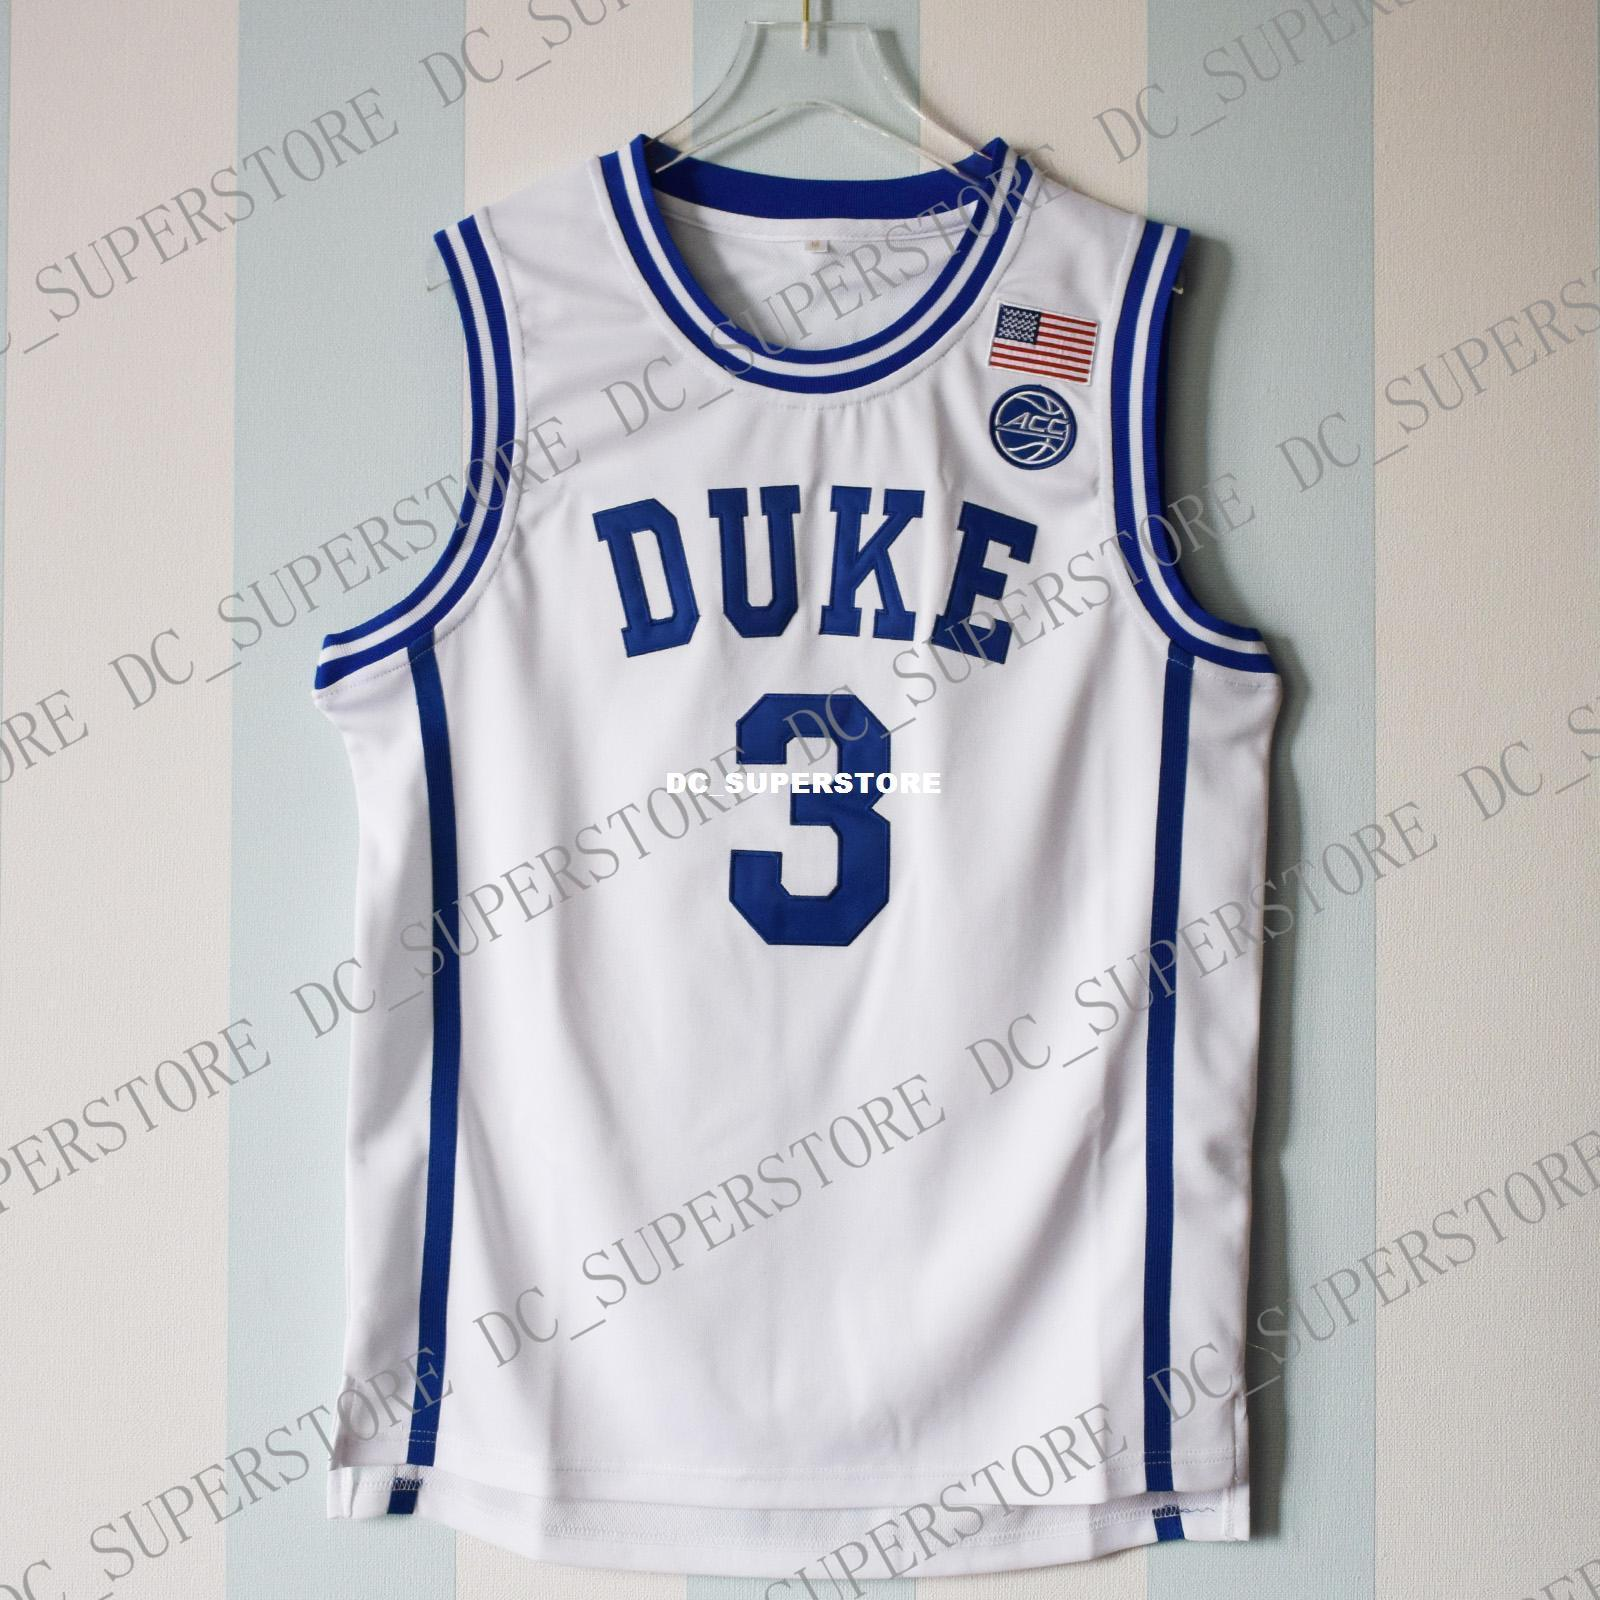 871f538d0925 2019 Cheap Custom Grayson Allen  3 Duke Blue Devils Basketball White Jersey  Stitched Customize Any Number Name MEN WOMEN YOUTH XS 5XL From  Dc superstore